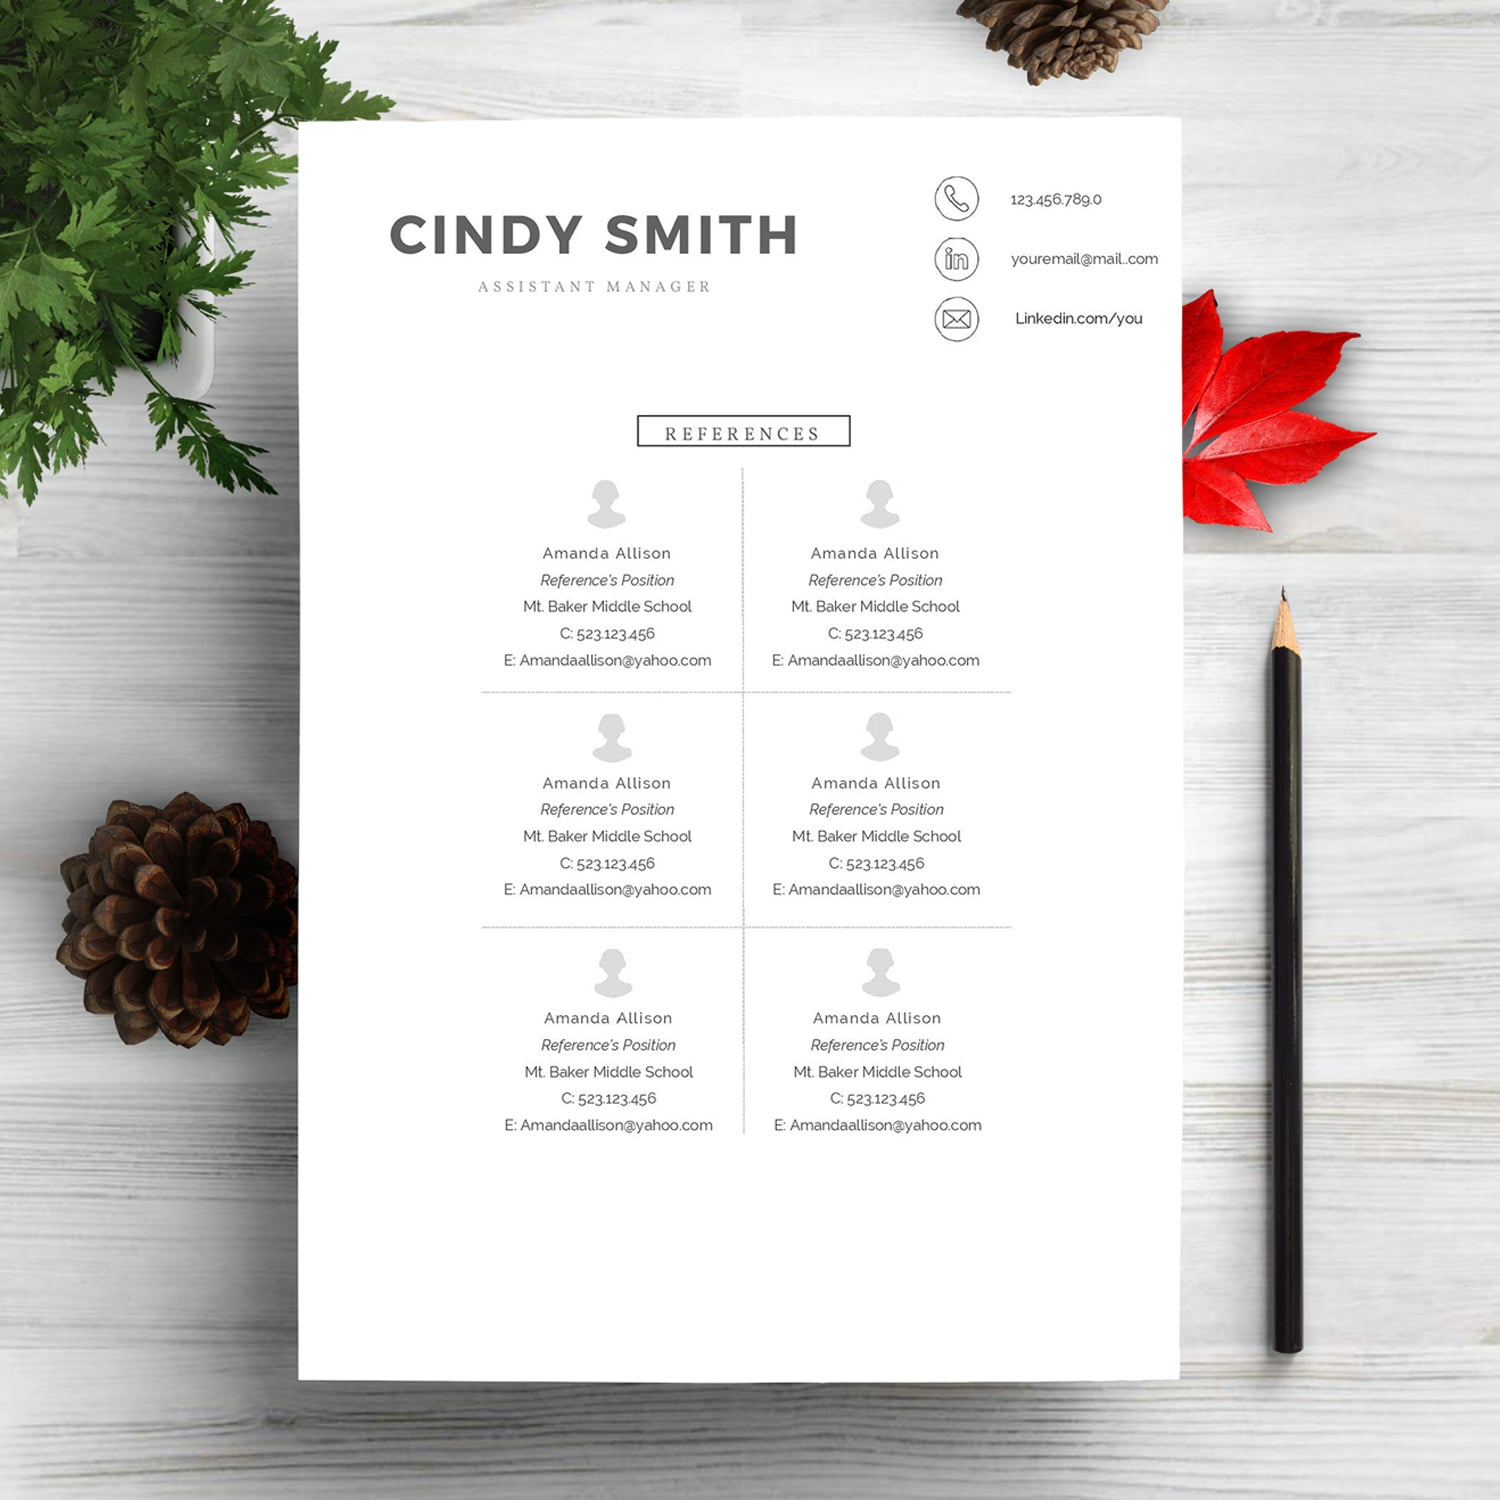 Professional Resume Template 2020. Clean Resume Template – Only $9! - refrences